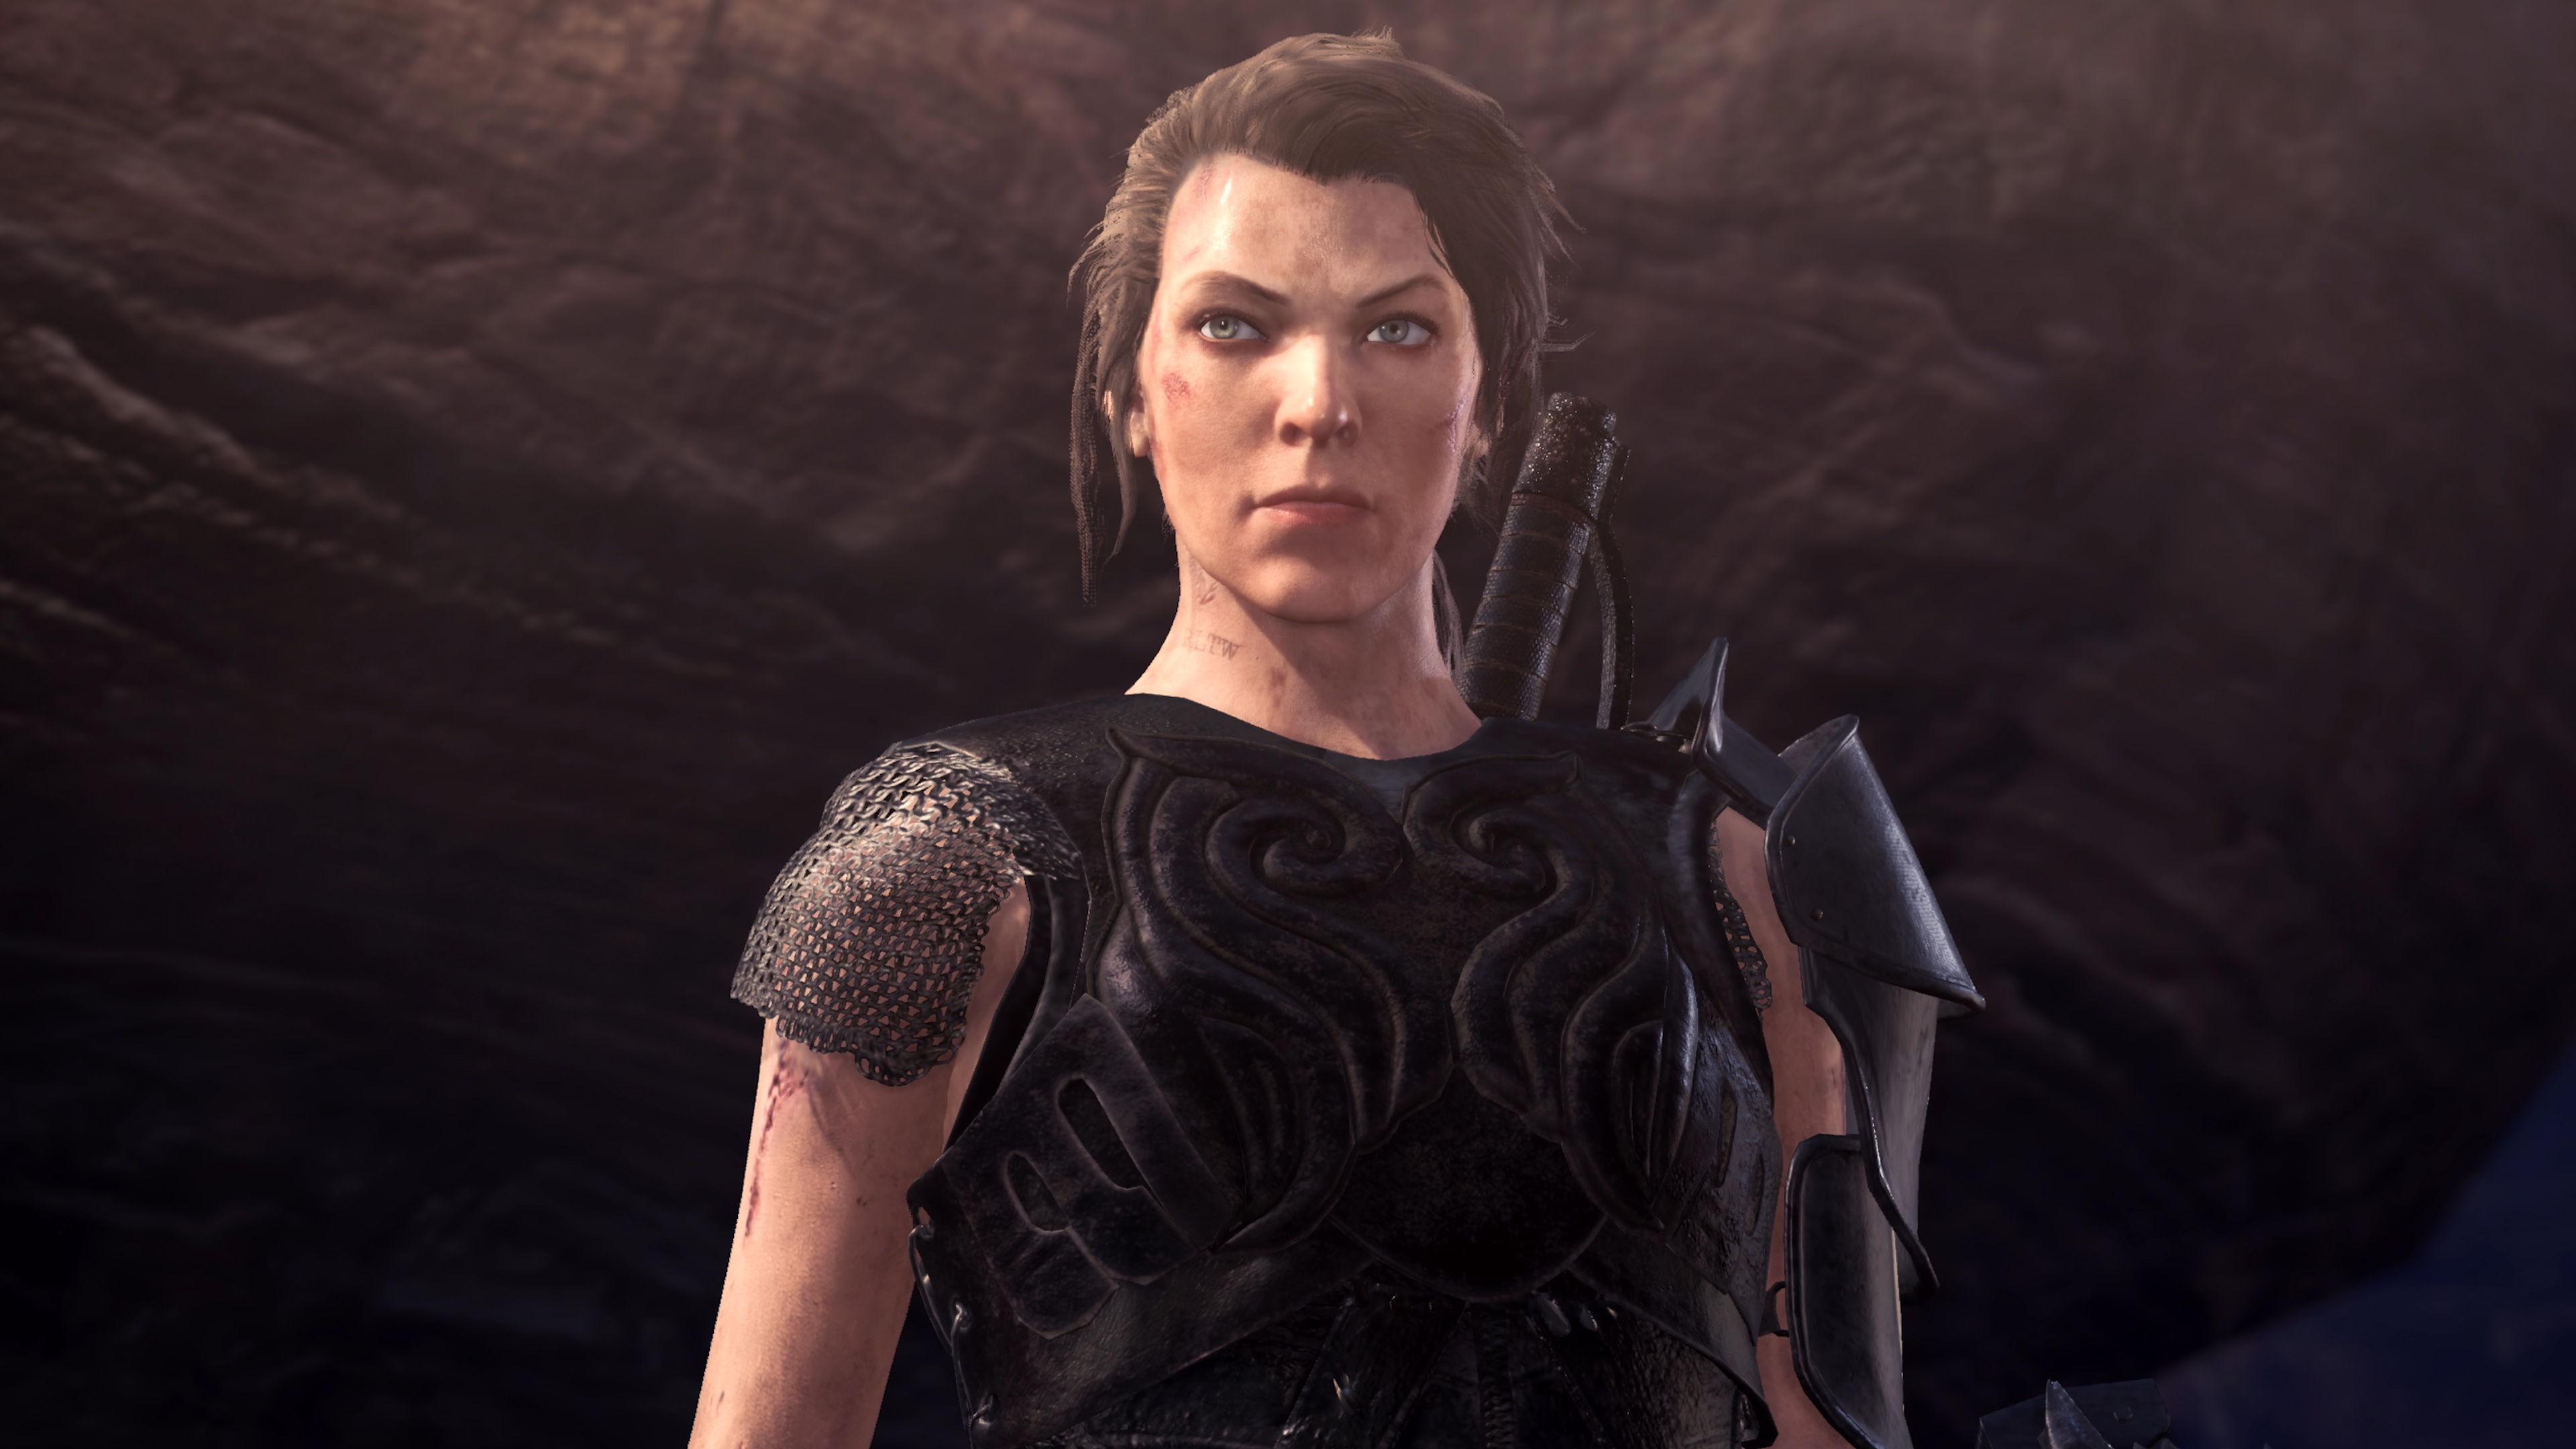 Milla Jovovich's character Artemis as she appears in Monster Hunter World: Iceborne.